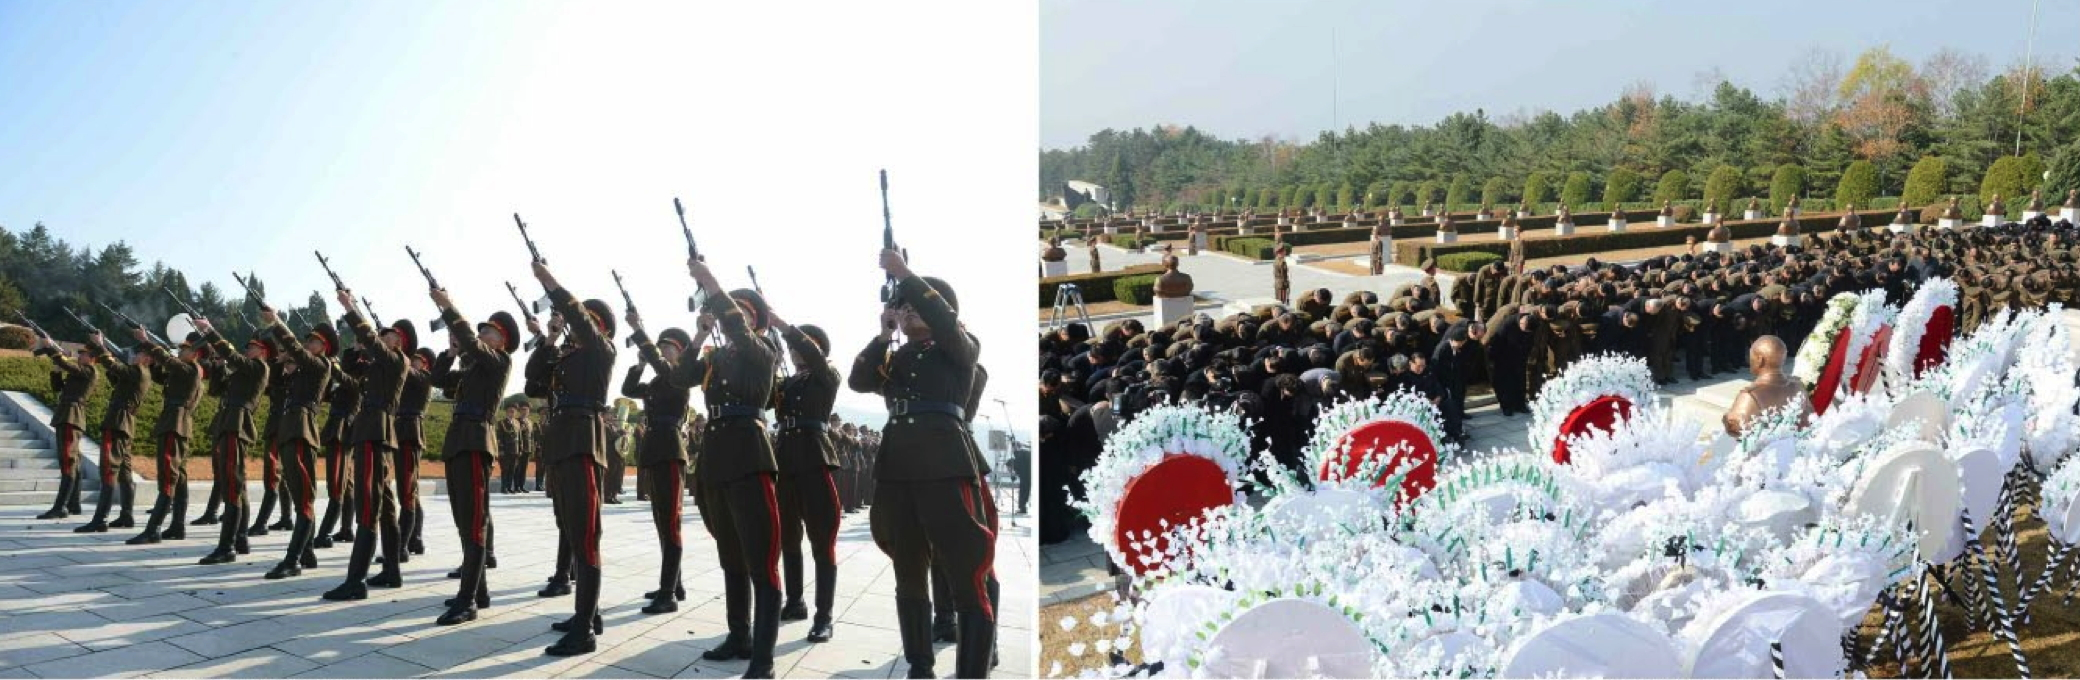 An honor guard fires rifles (left) and floral wreaths are placed during an interment ceremony for Ri Ul Sol at Revolutionary Martyrs' Cemetery in Pyongyang on November 11, 2015 (Photo: Rodong Sinmun).